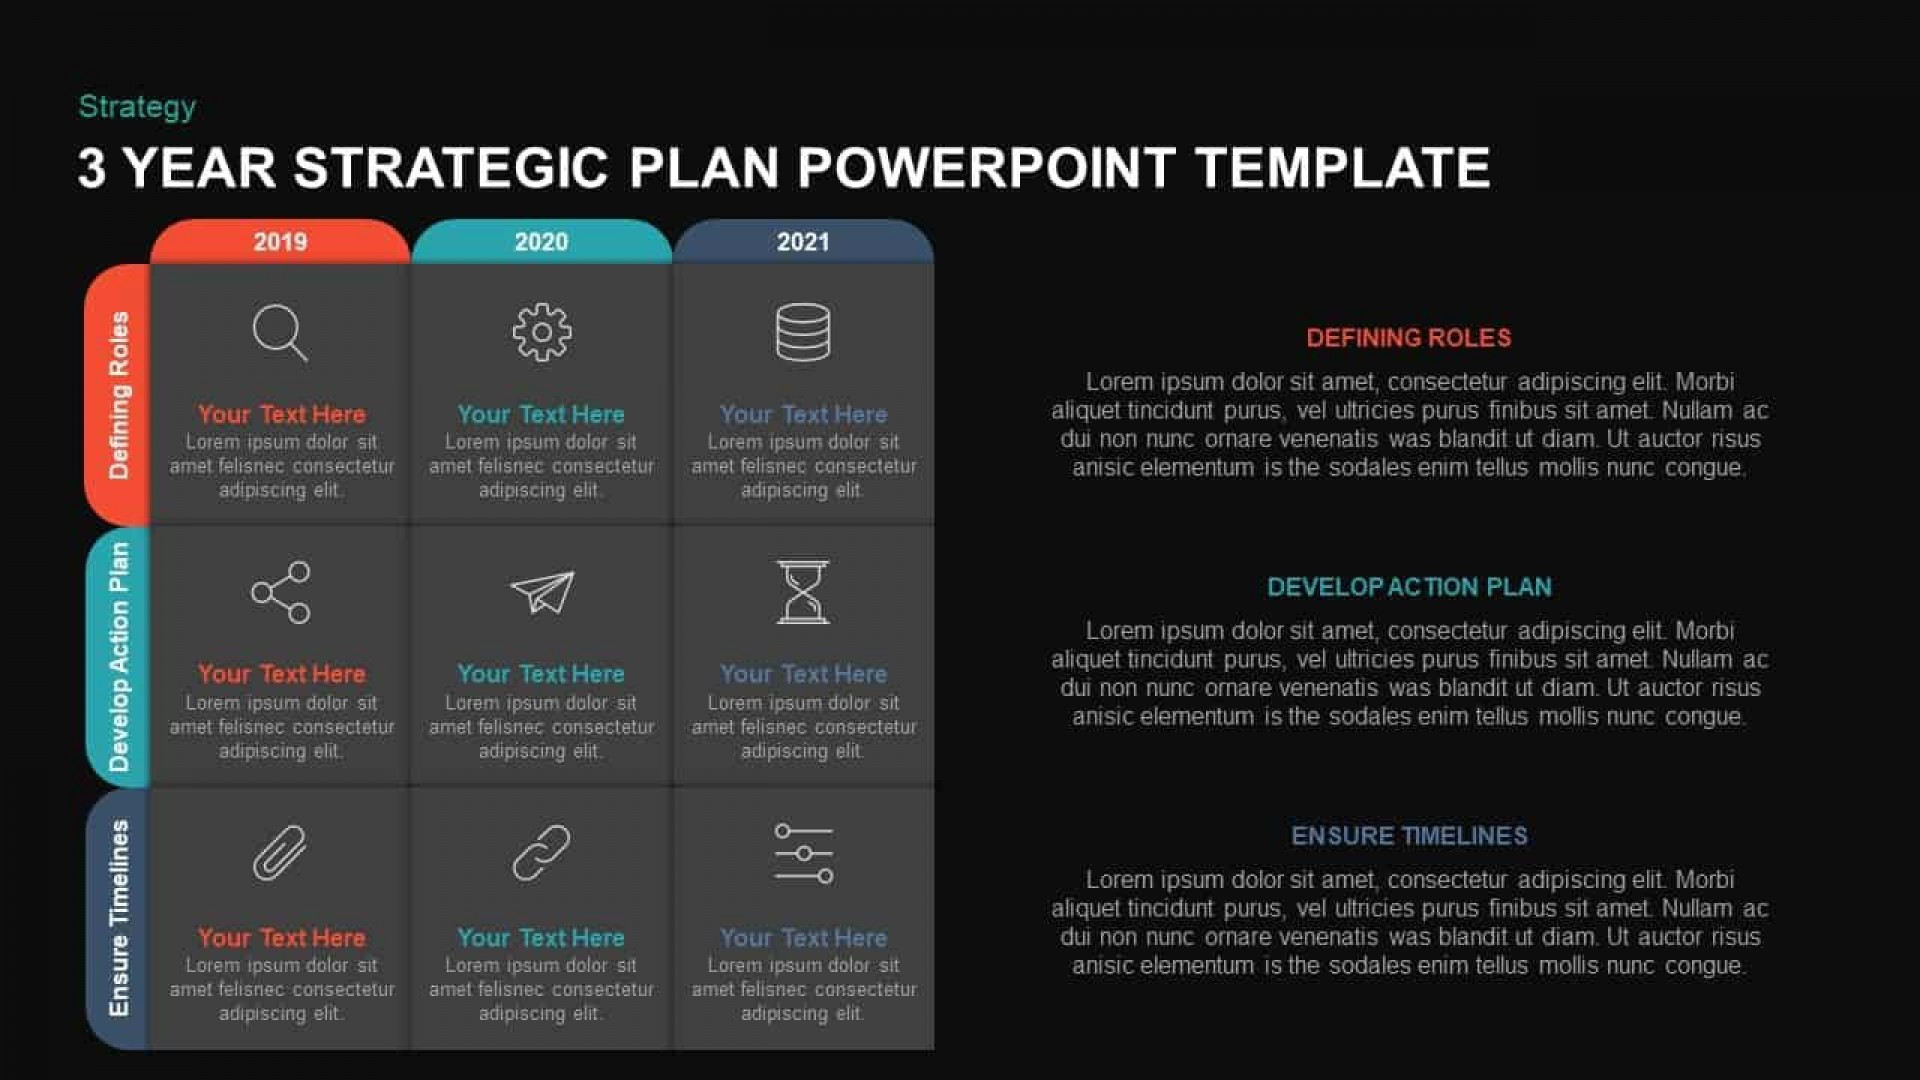 001 Exceptional Strategic Planning Ppt Template Free Picture  5 Year Plan One Page Account1920